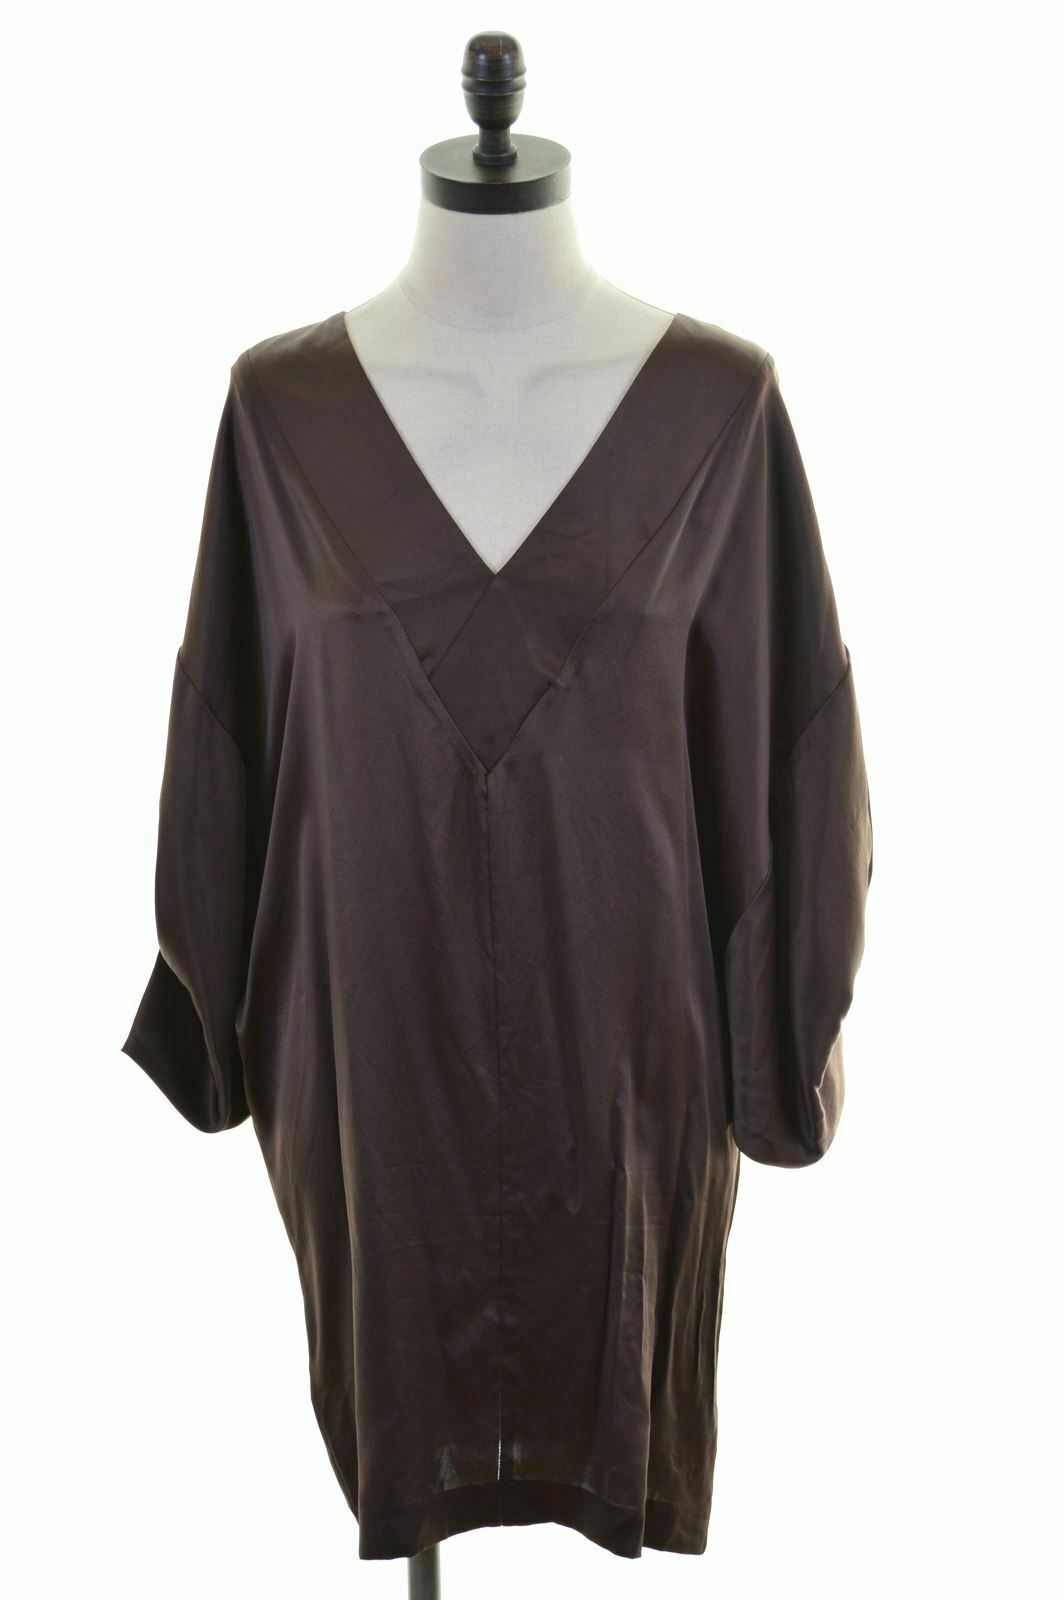 CBG MAXAZRIA damen Kimono Dress Größe 8 Small Brown Silk OverGrößed  JD89